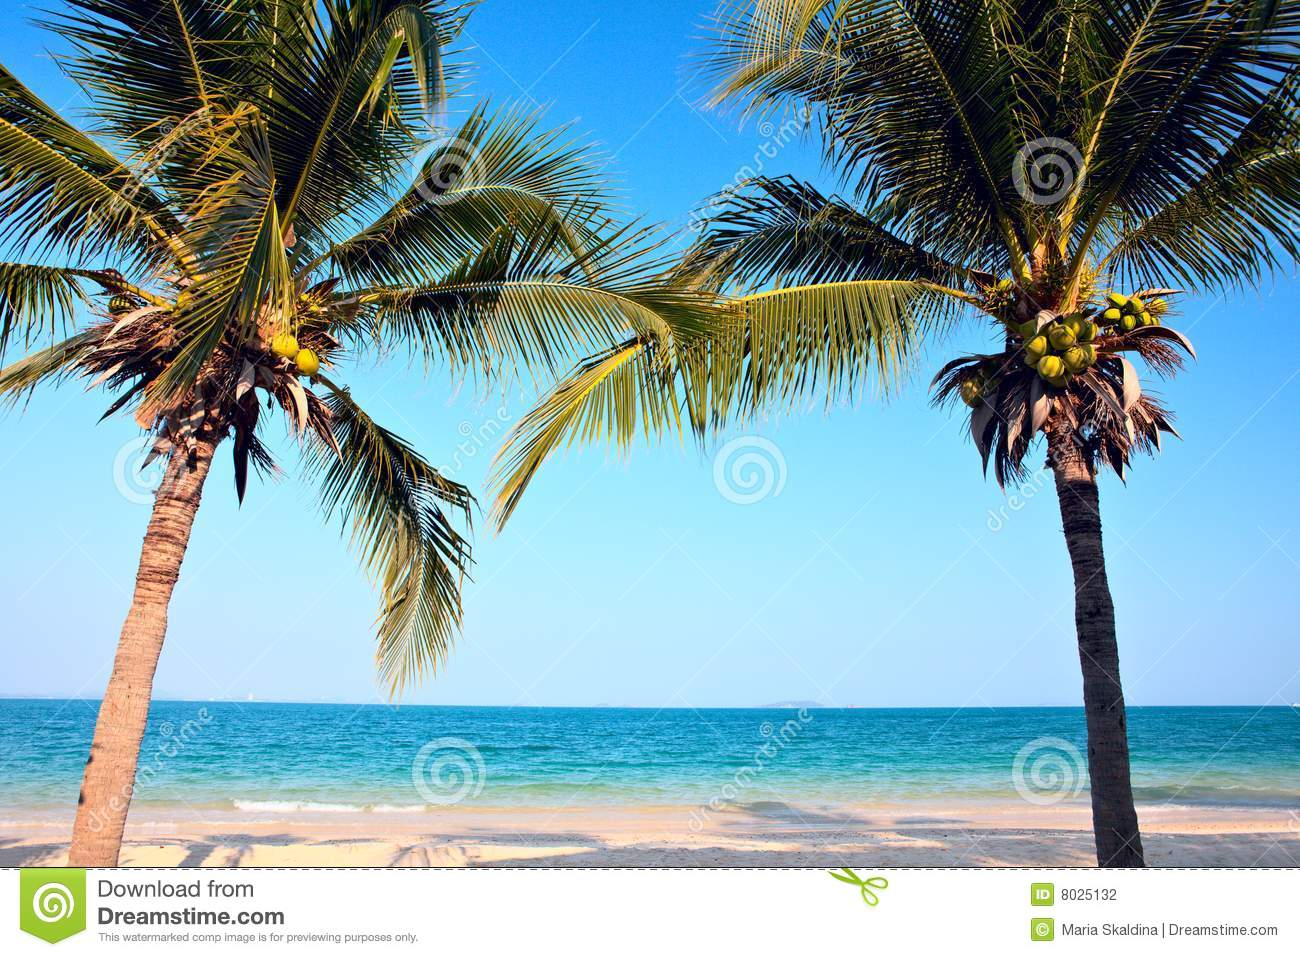 Palm Trees On The Beach: Palm Trees On The Beach Stock Photography